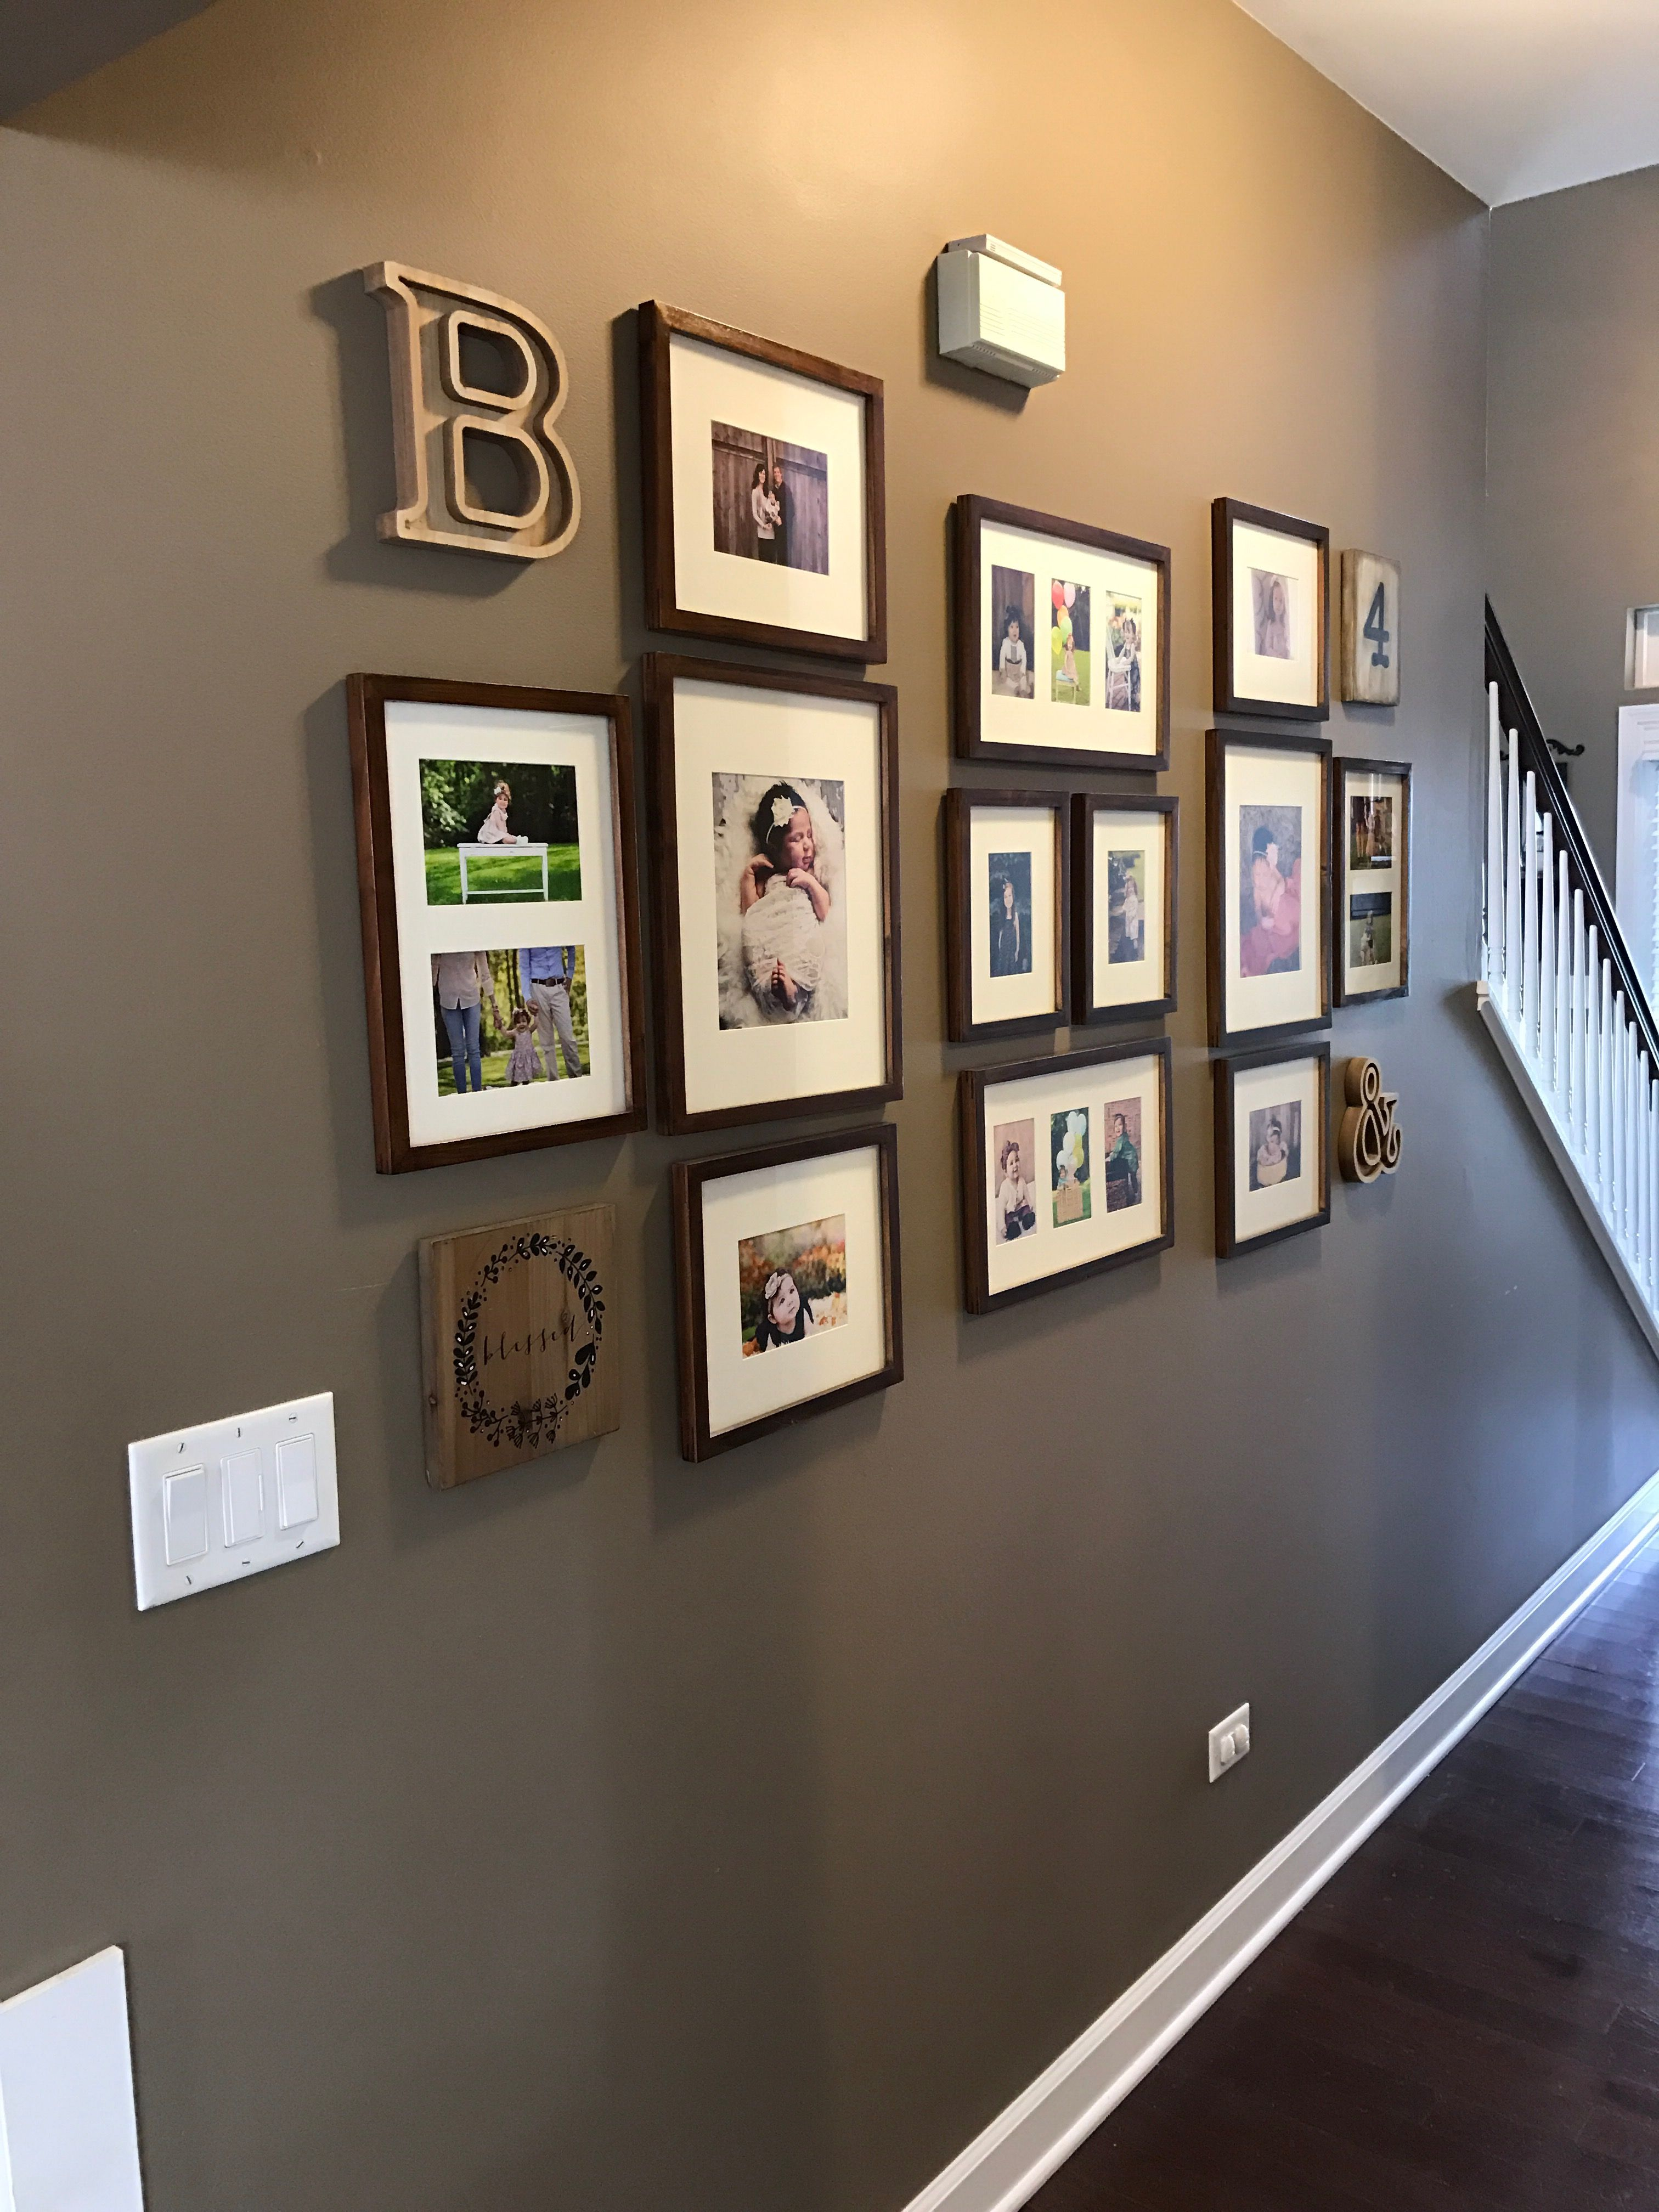 Pottery barn gallery wall | Gallery wall, House rooms, Home decor